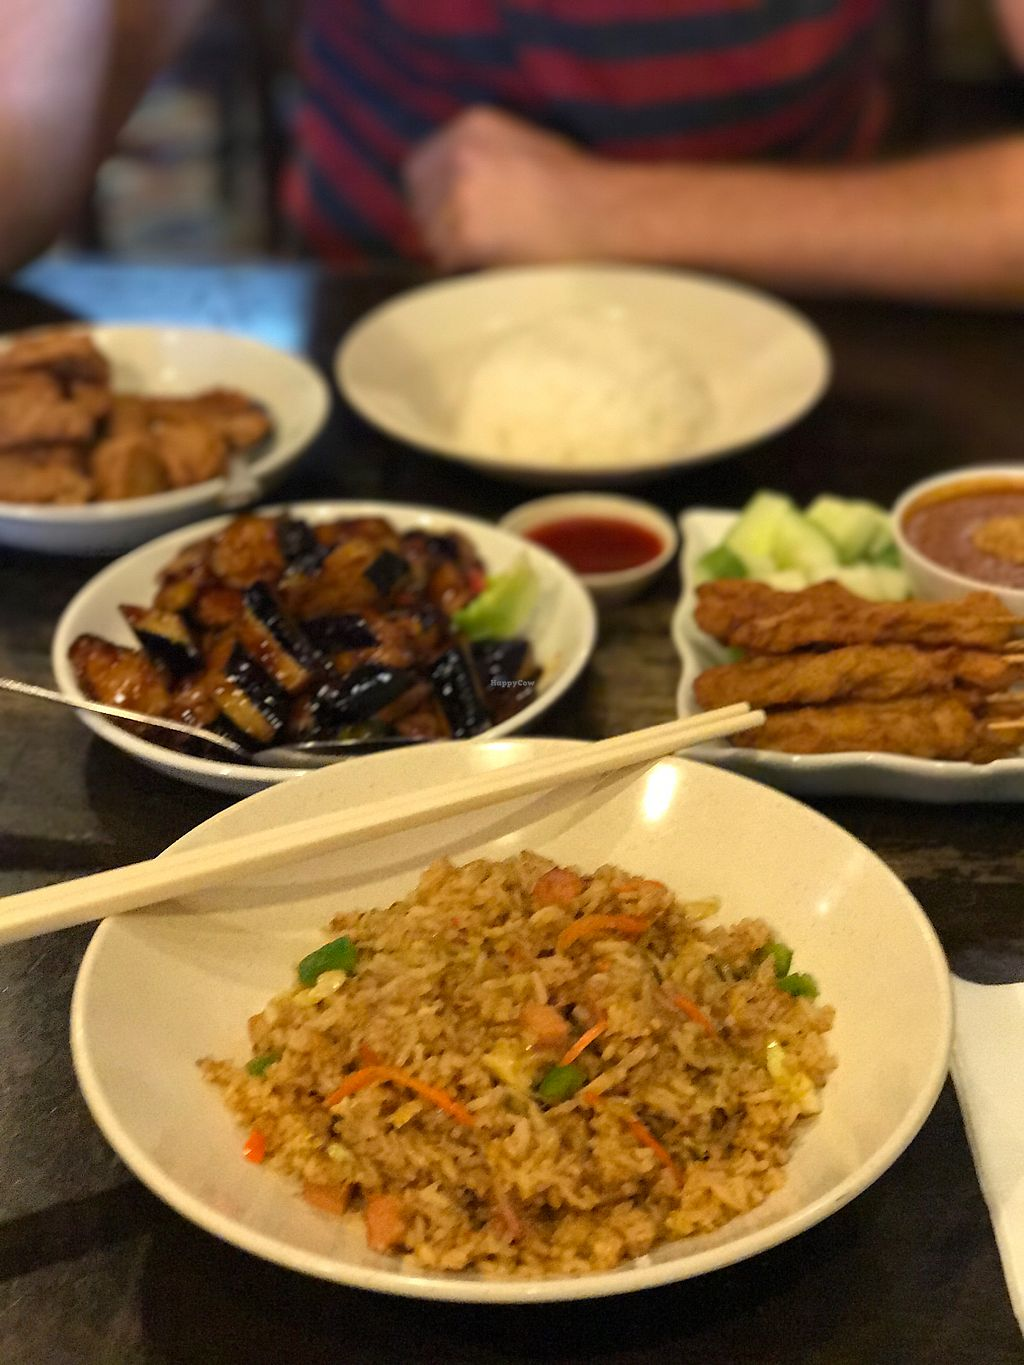 """Photo of Zen Xin Vegetarian  by <a href=""""/members/profile/EllenVanGool"""">EllenVanGool</a> <br/>satay, fried rice, eggplant & fried chicken <br/> July 20, 2017  - <a href='/contact/abuse/image/33012/282369'>Report</a>"""